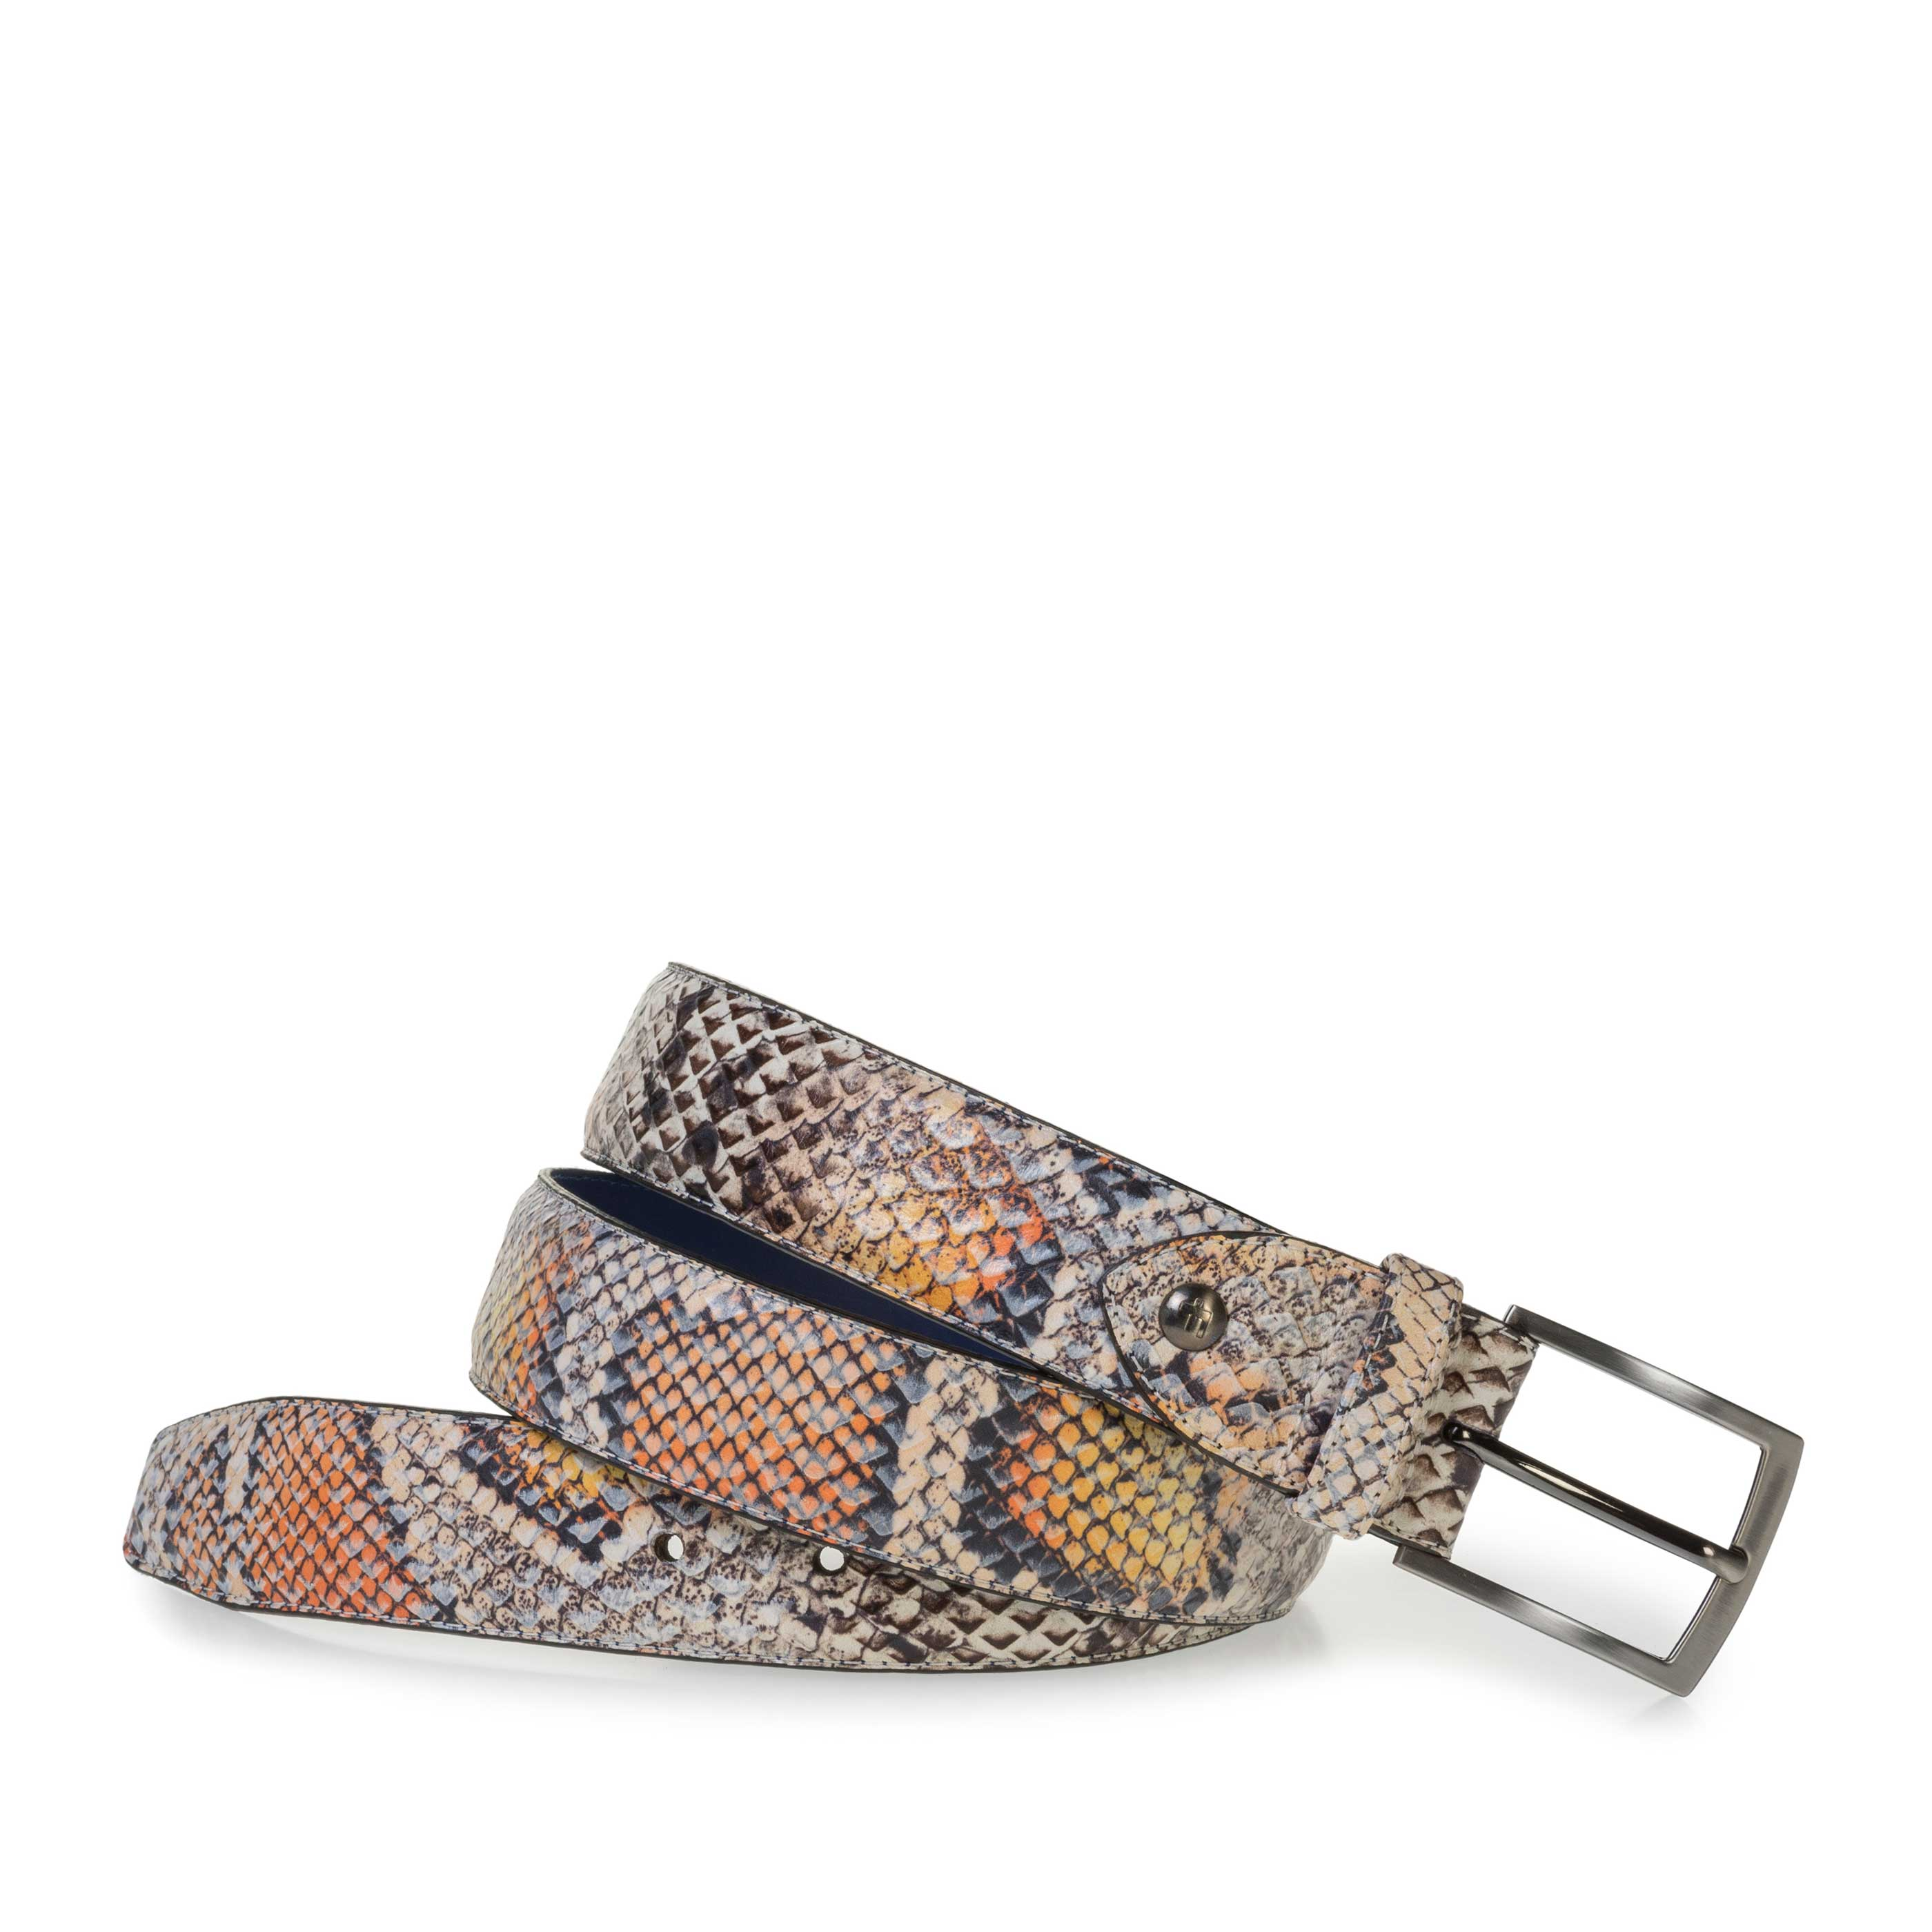 75201/67 - Premium belt with orange snake print